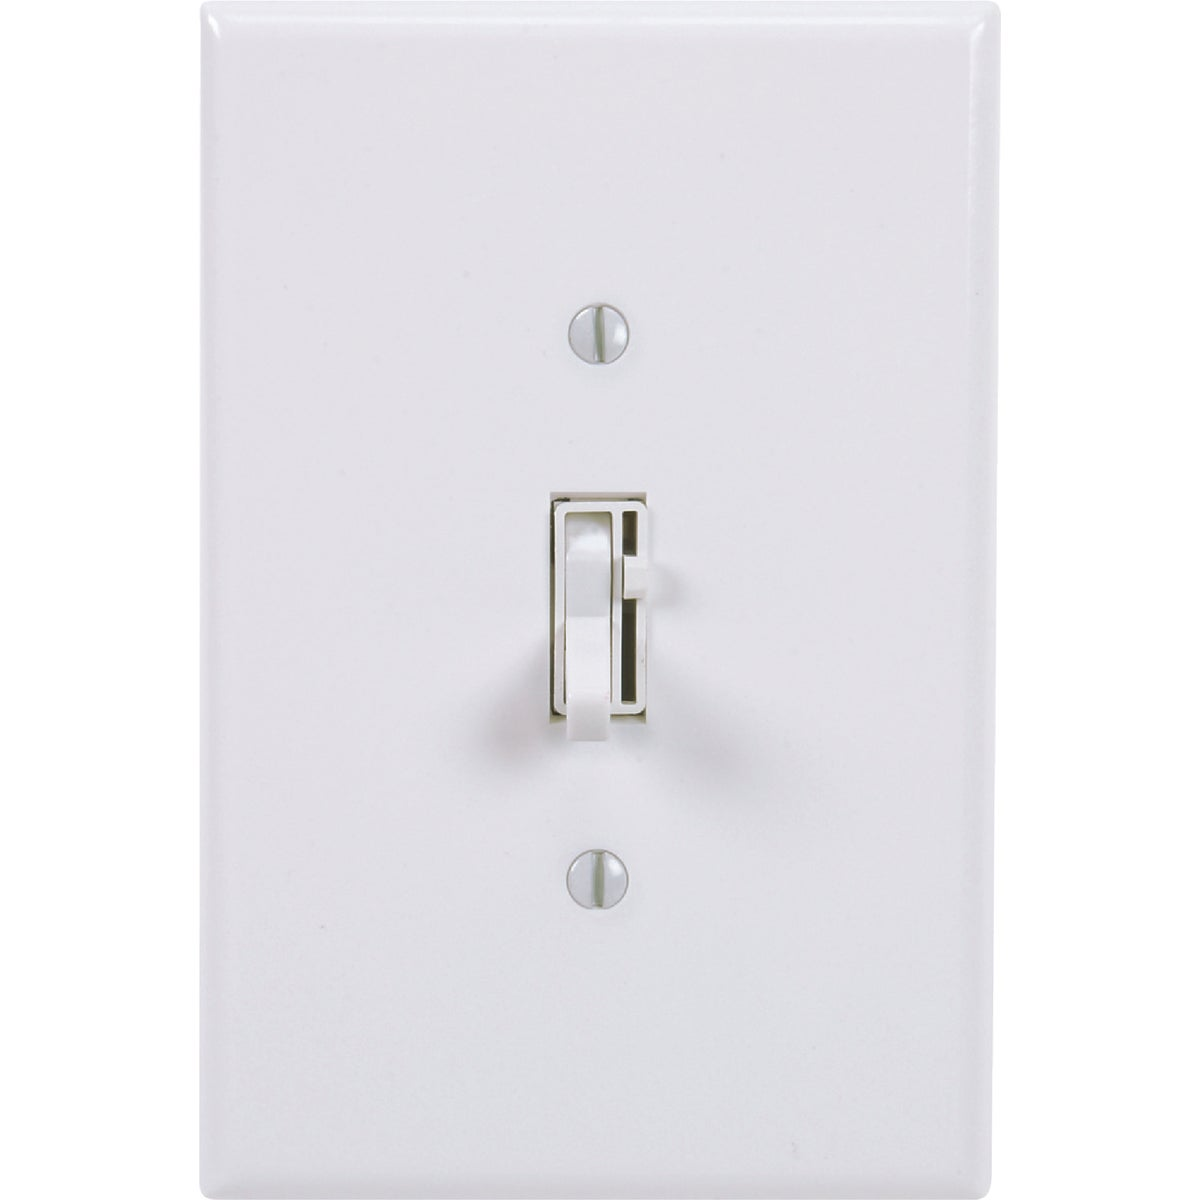 WHT SP SLIDE DIMMER - TG-600PH-WH by Lutron Elect Co Inc